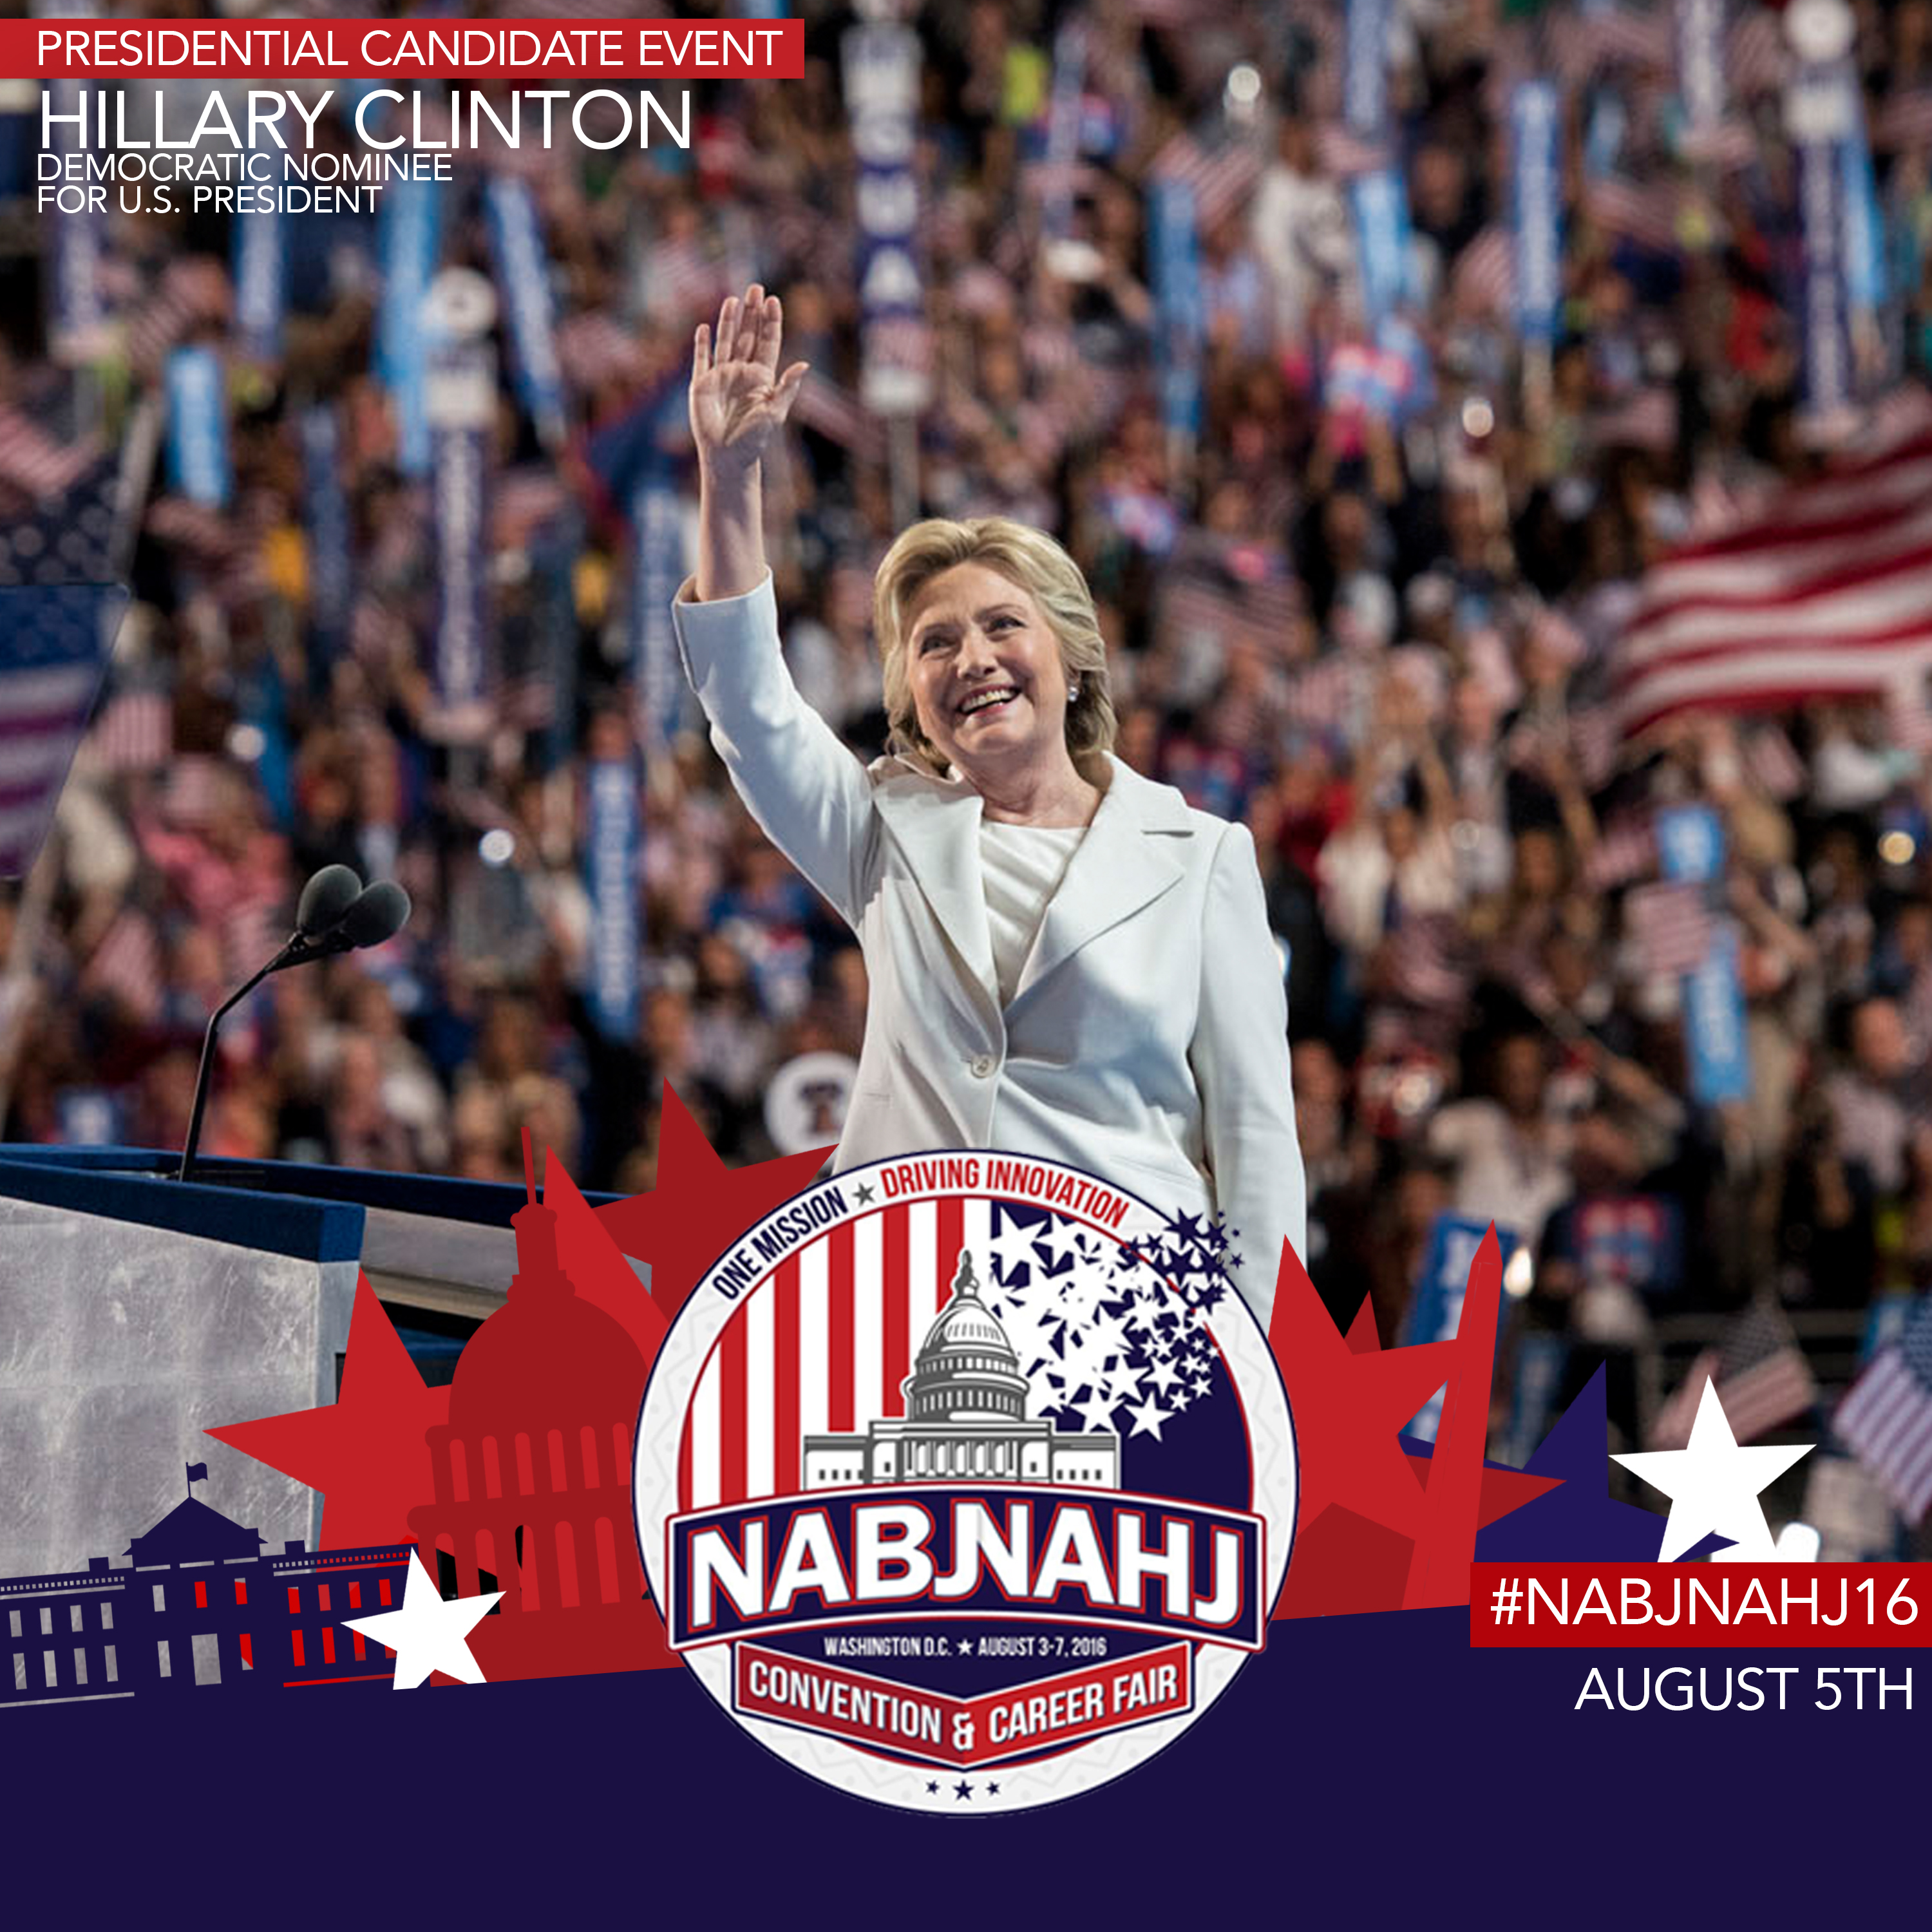 Secretary of State Hillary Clinton at the Democratic National Convention.  Clinton spoke at the #NABJNAHJ16 Convention in Washington, D.C.